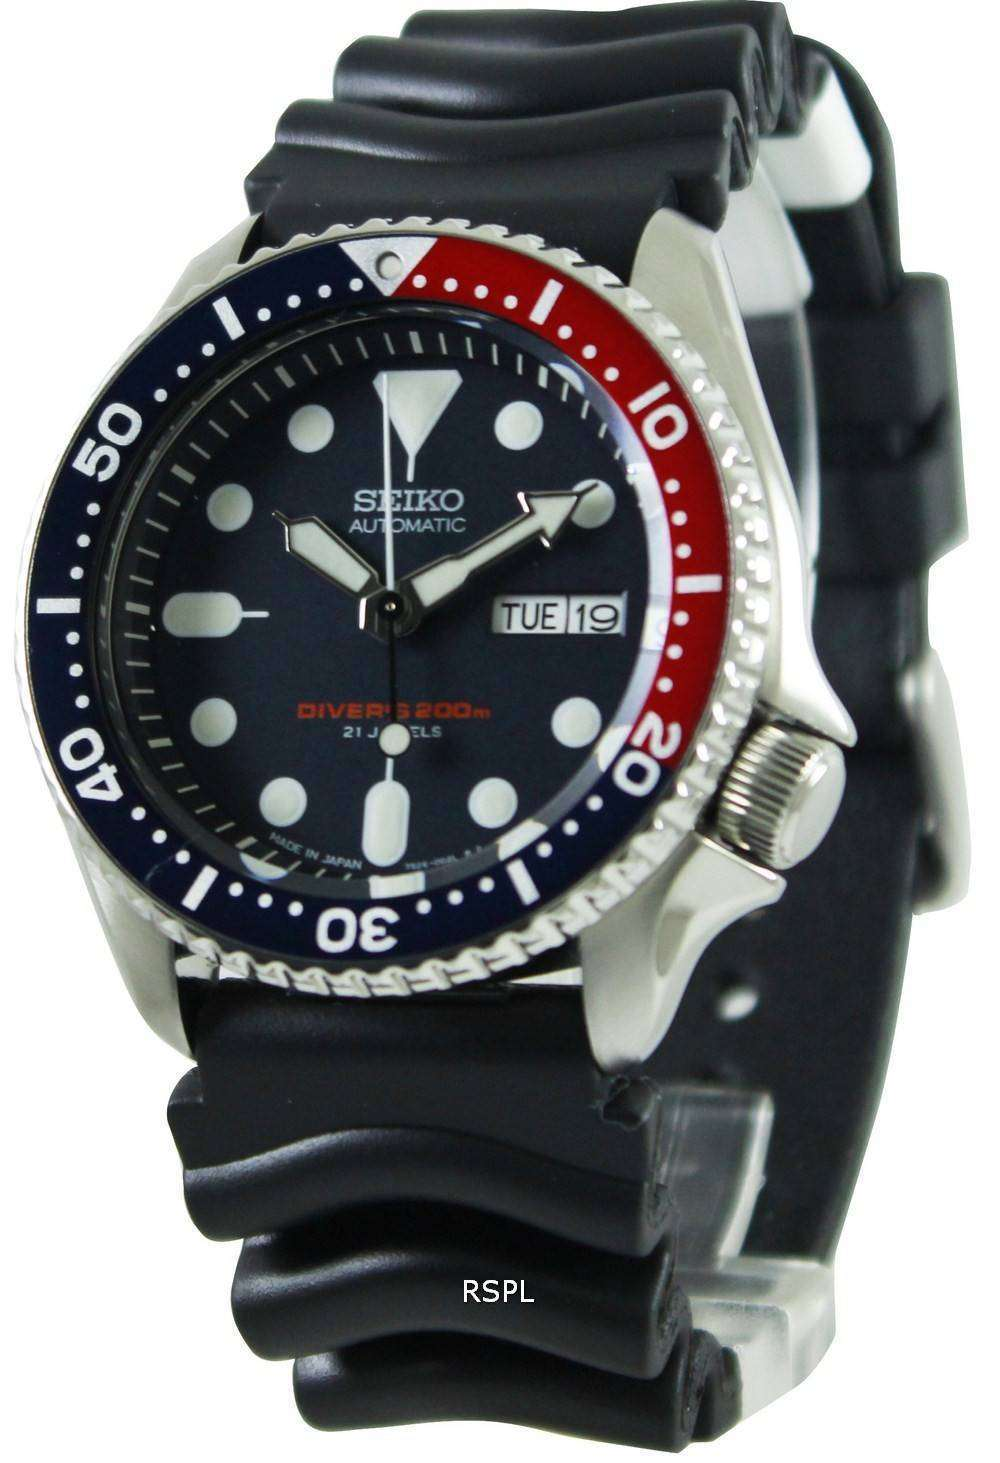 Seiko automatic divers 200m skx009j1 made in japan watch zetawatches for Watches japan